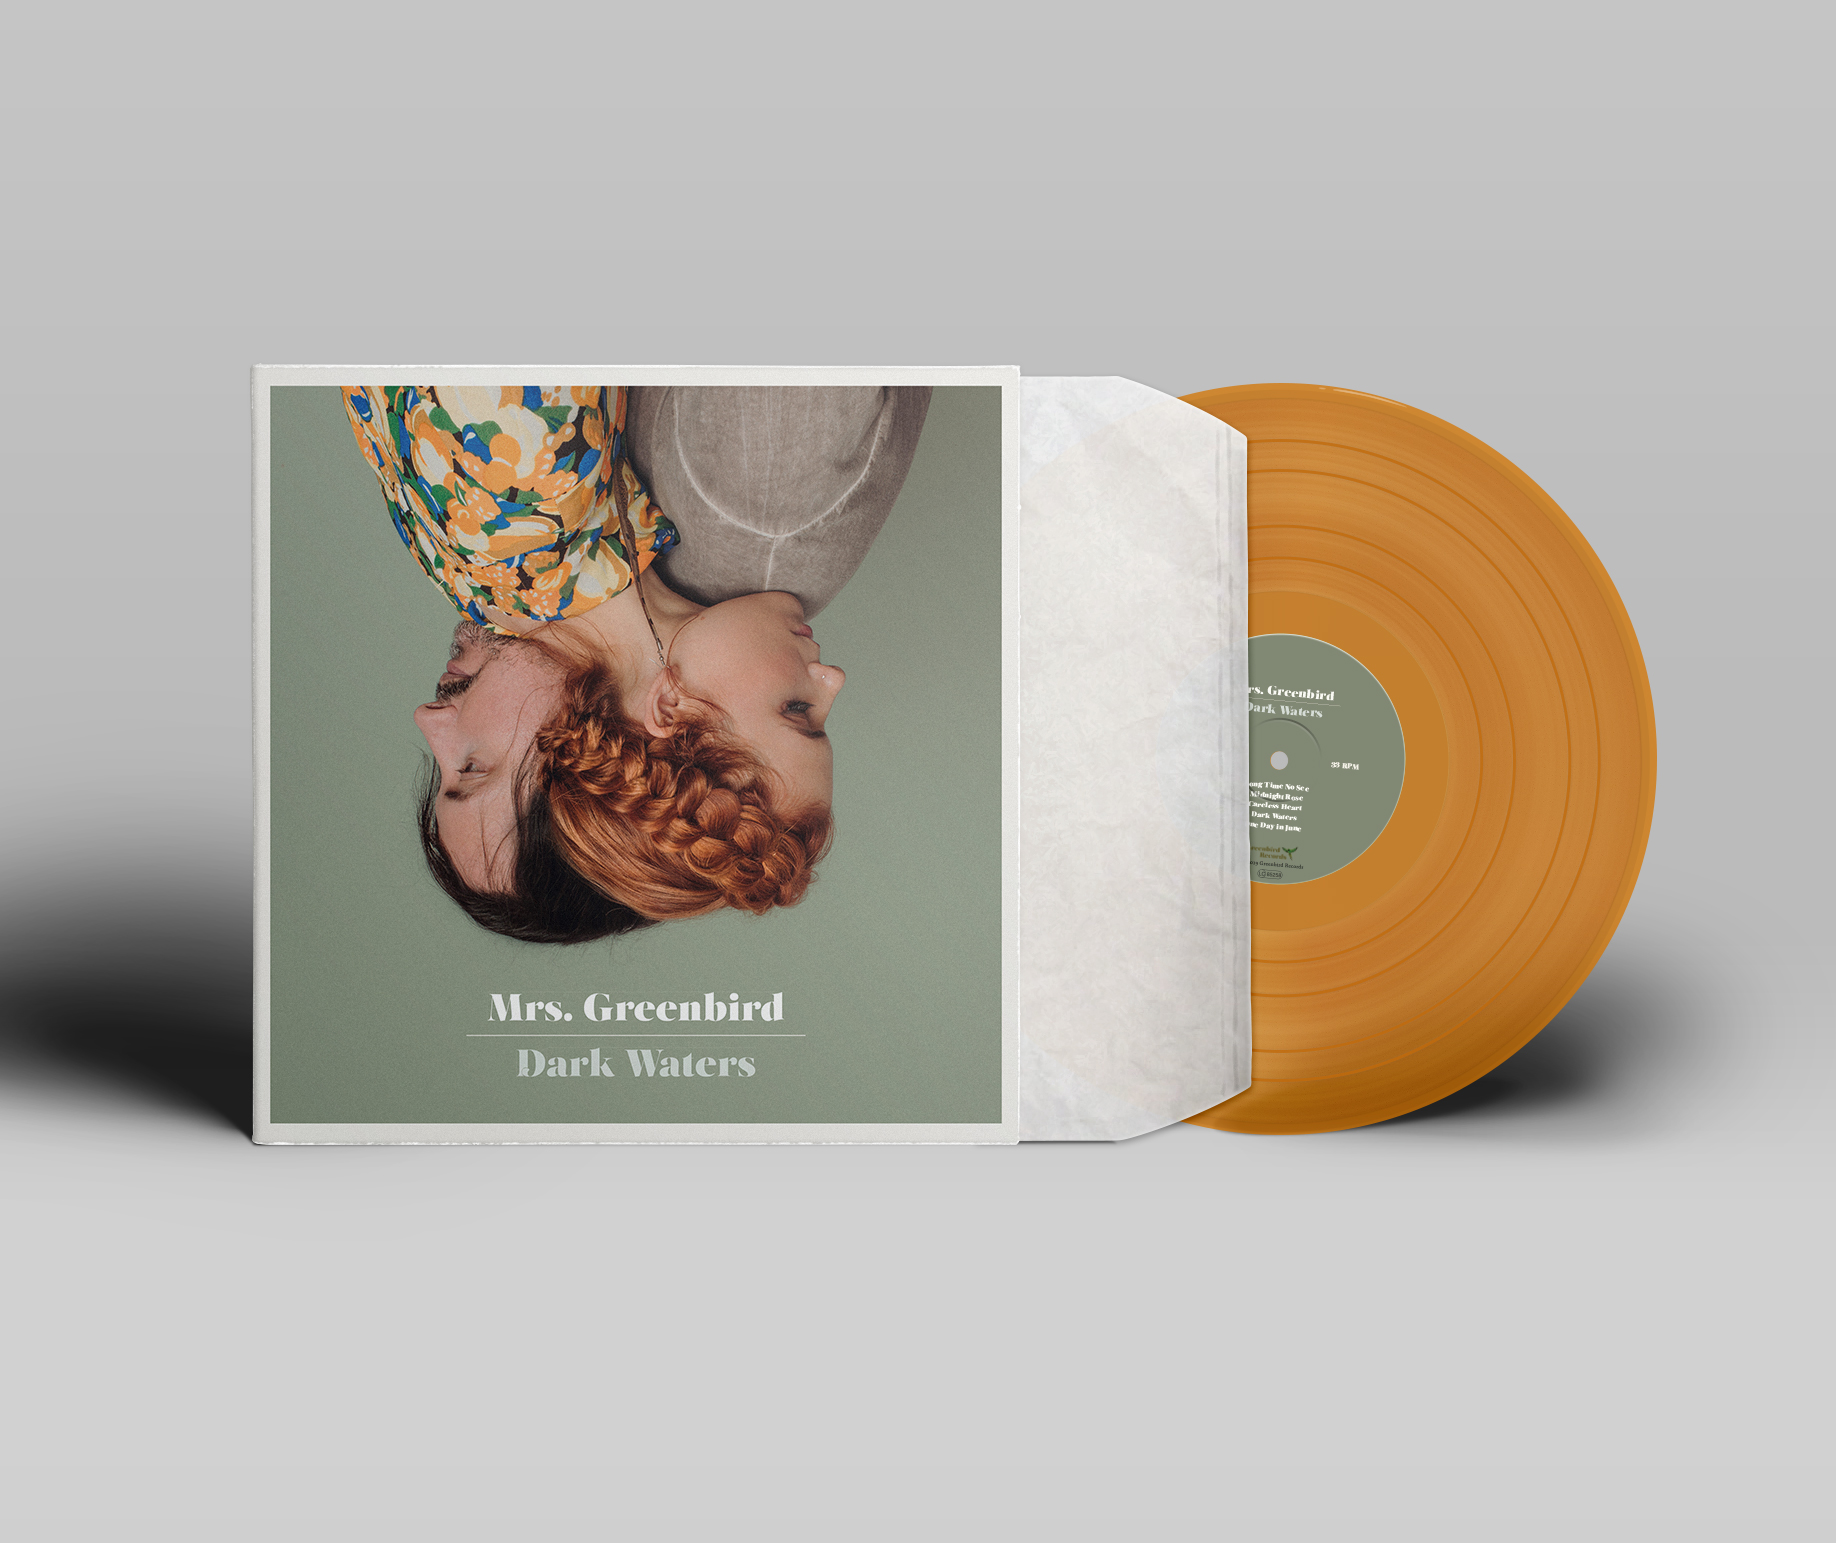 MRSG_Vinyl-Record-and-Cover-Presentation-Mock-up_color.jpg